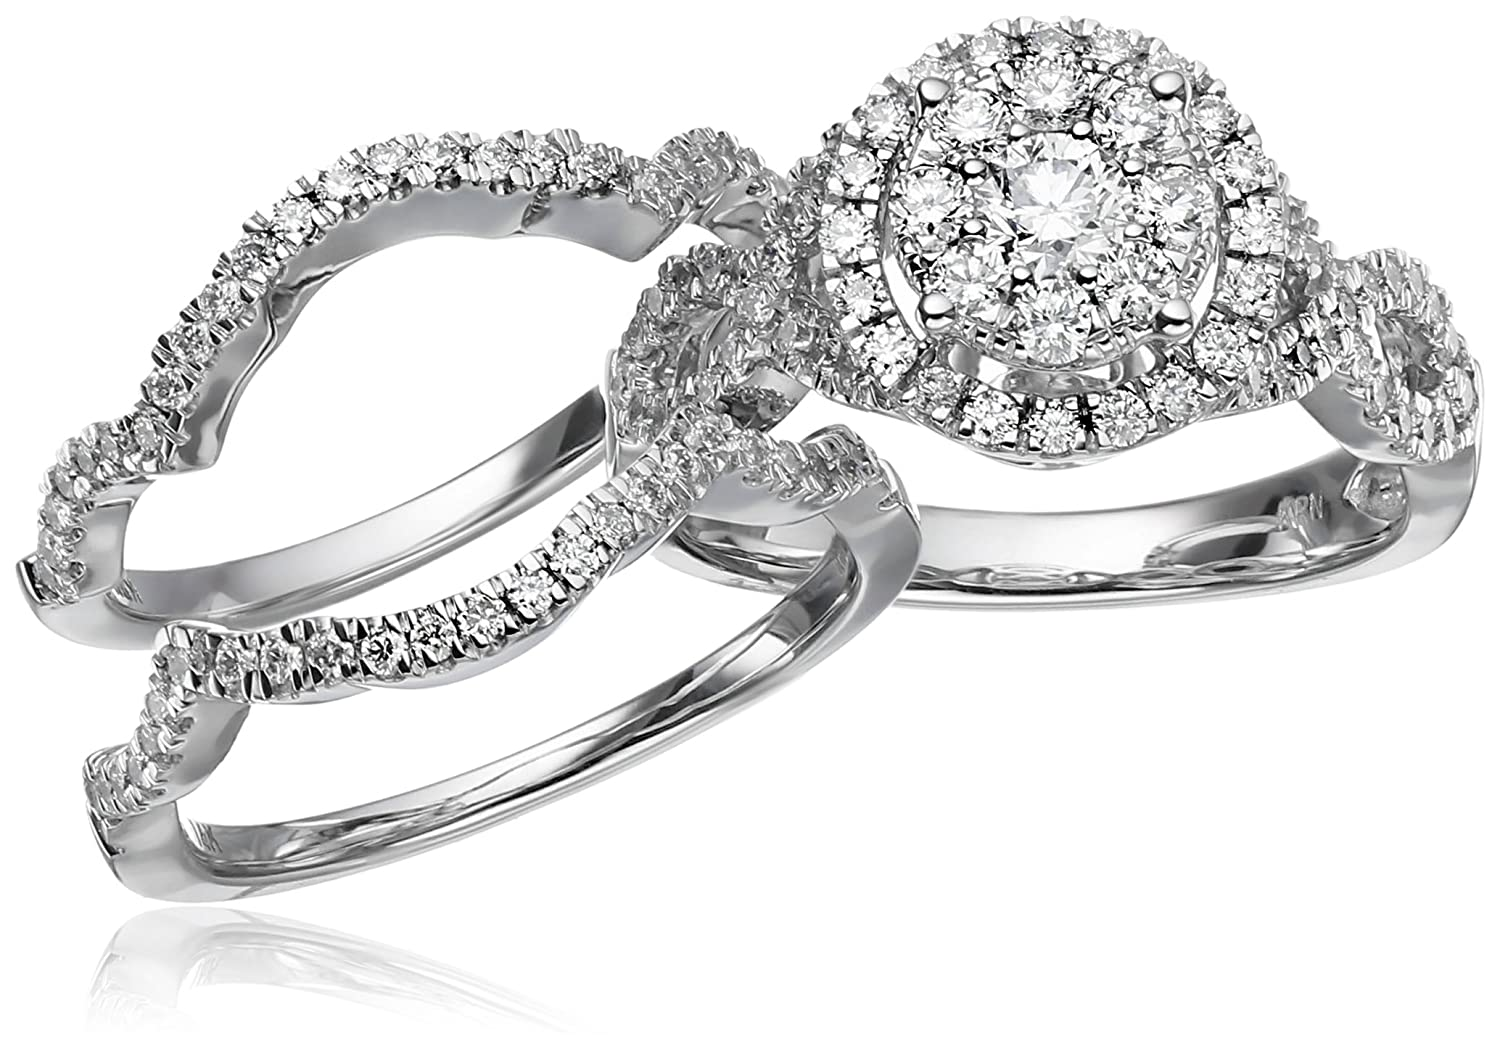 Amazoncom 14k White Gold Diamond 3Piece Wedding Ring Set 1 14